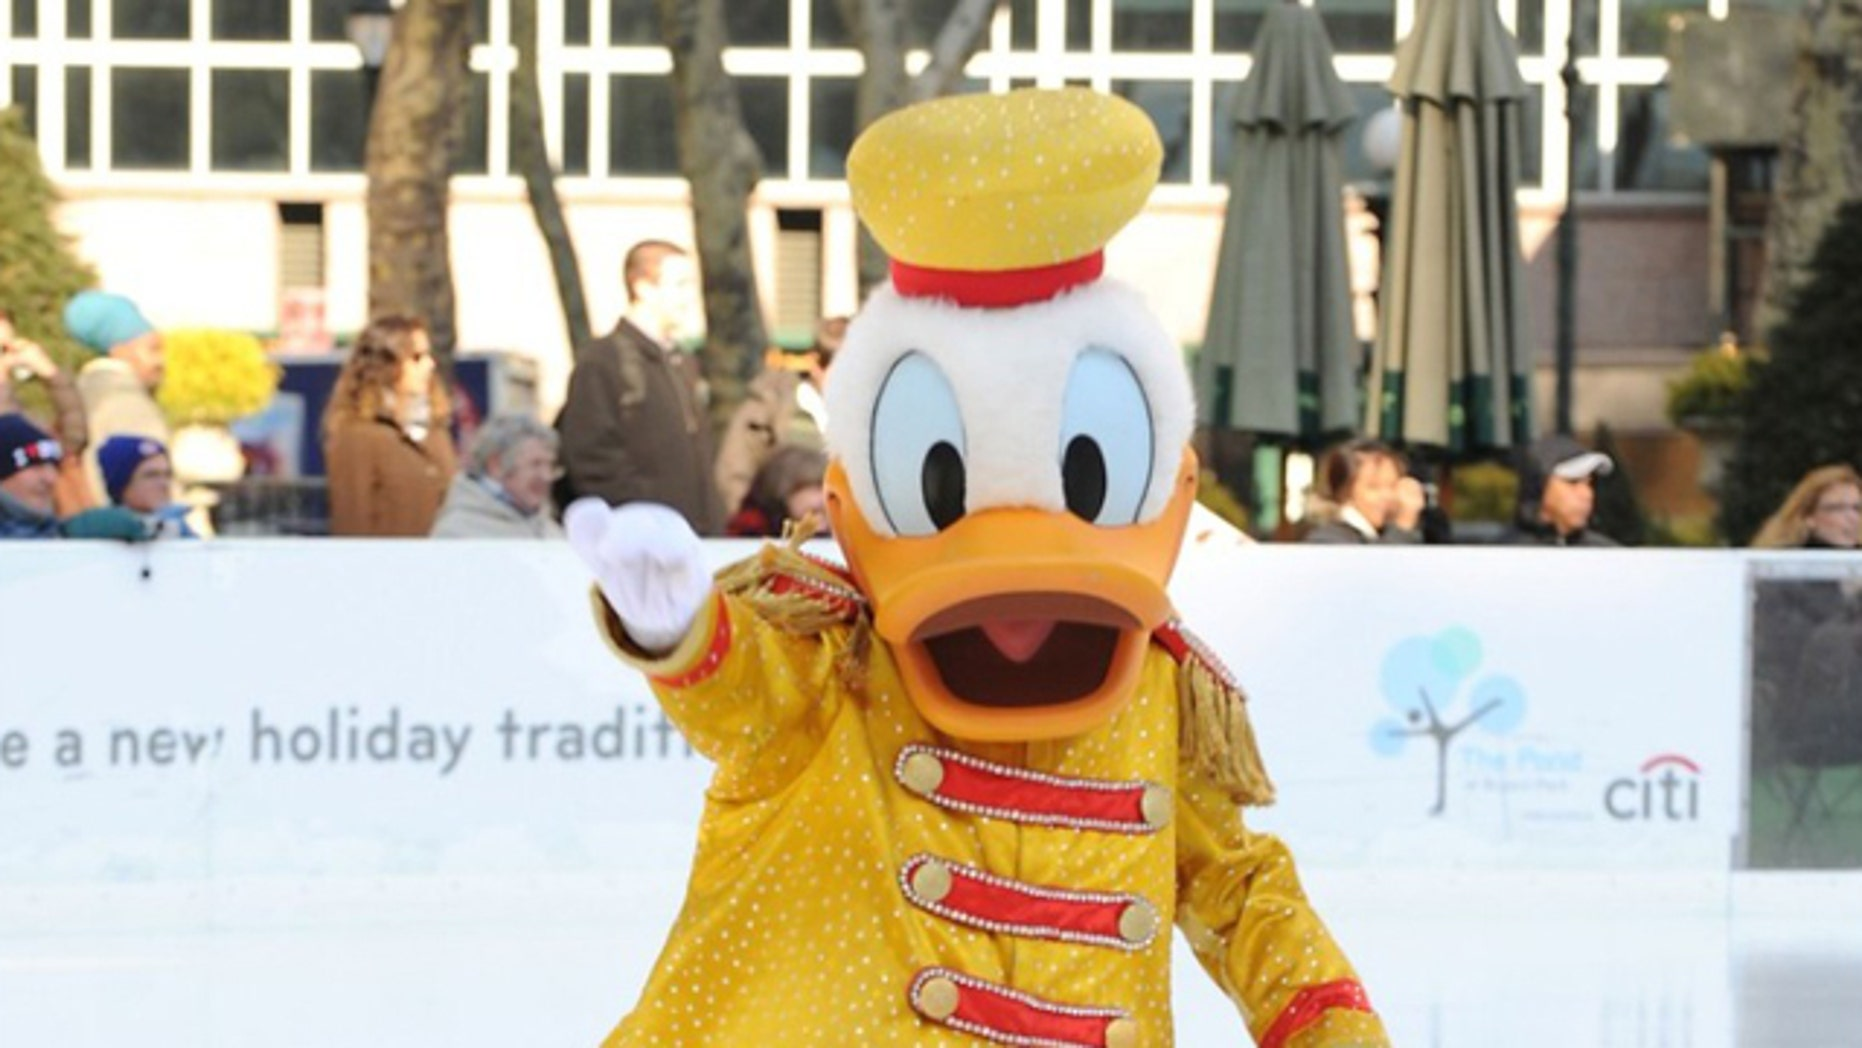 A federal judge ruled that a Pennsylvania woman who claimed Donald Duck groped her at Disney's Epcot theme park may have her day in court.